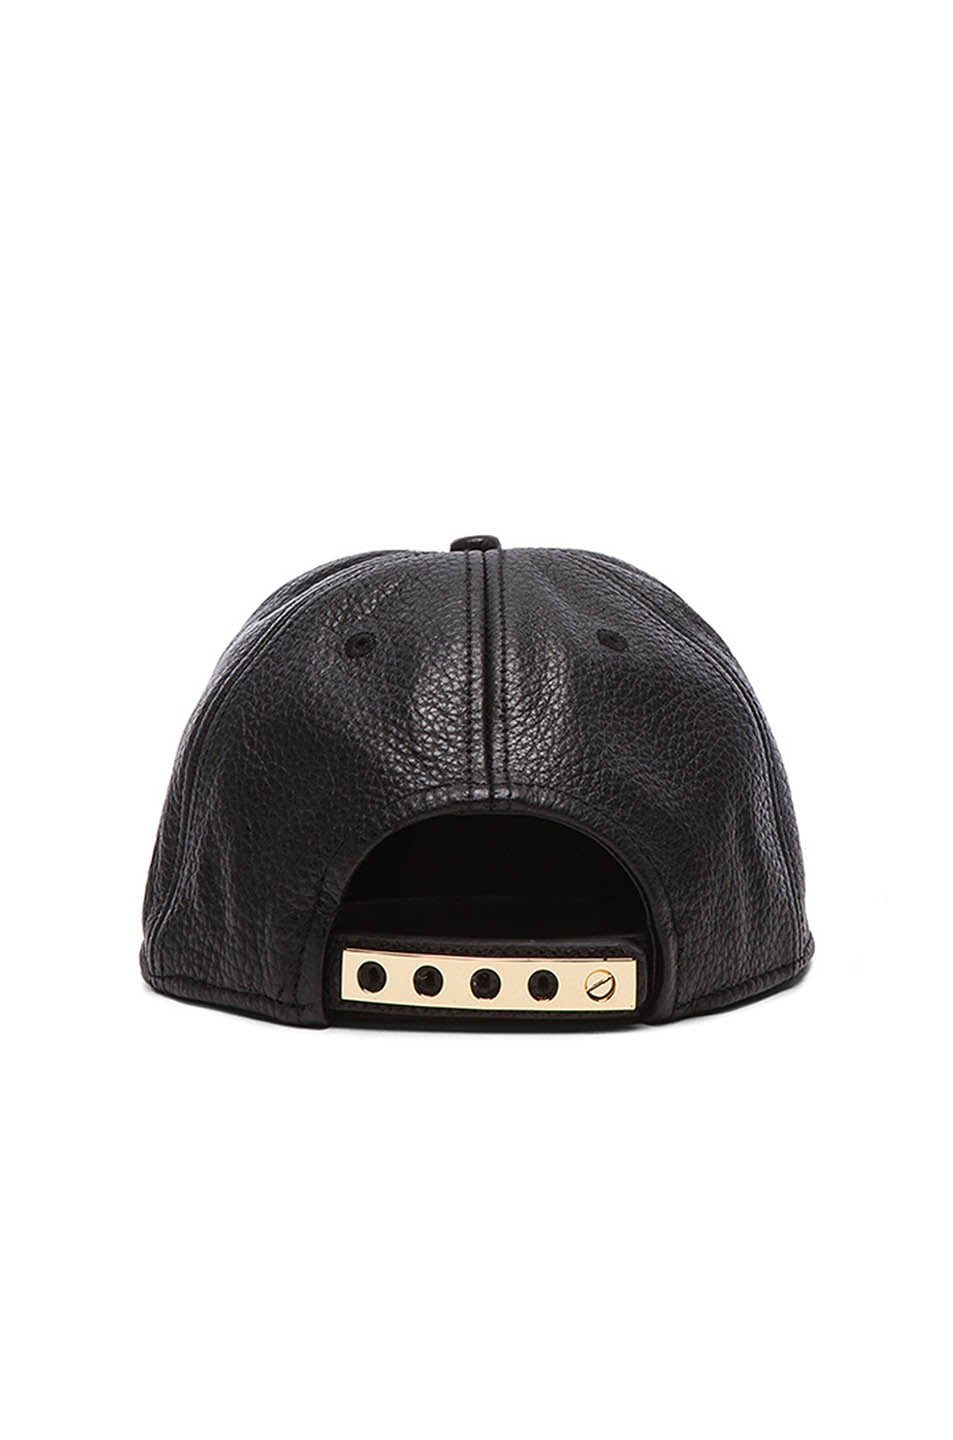 8477394ca13 Image 4 of Buscemi Screwback Hat in Black